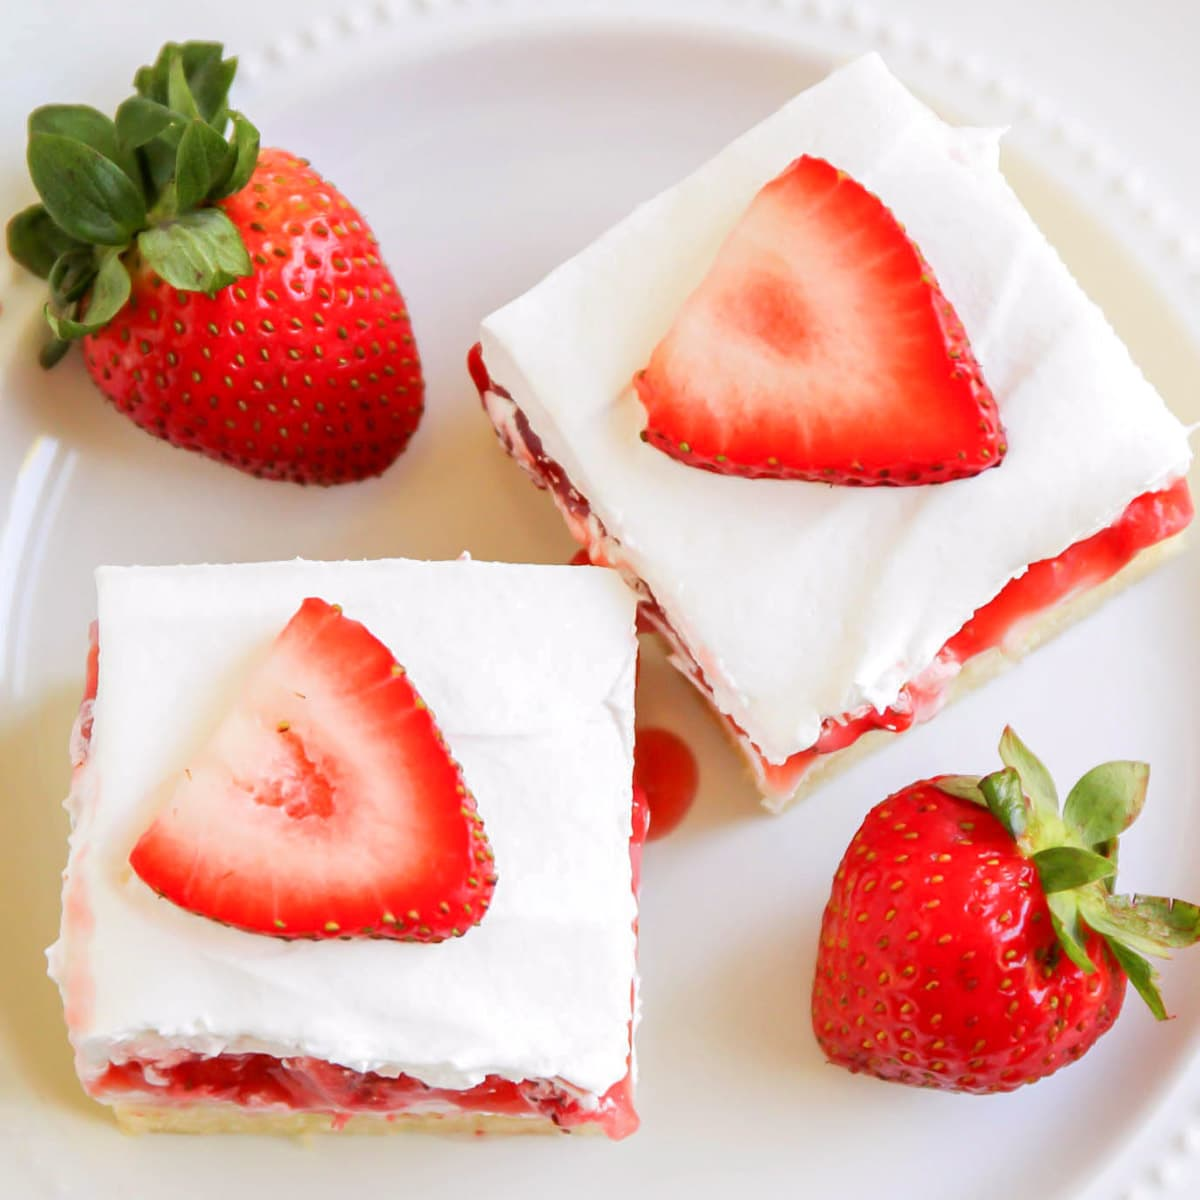 Strawberry cream cheese bars on a white plate